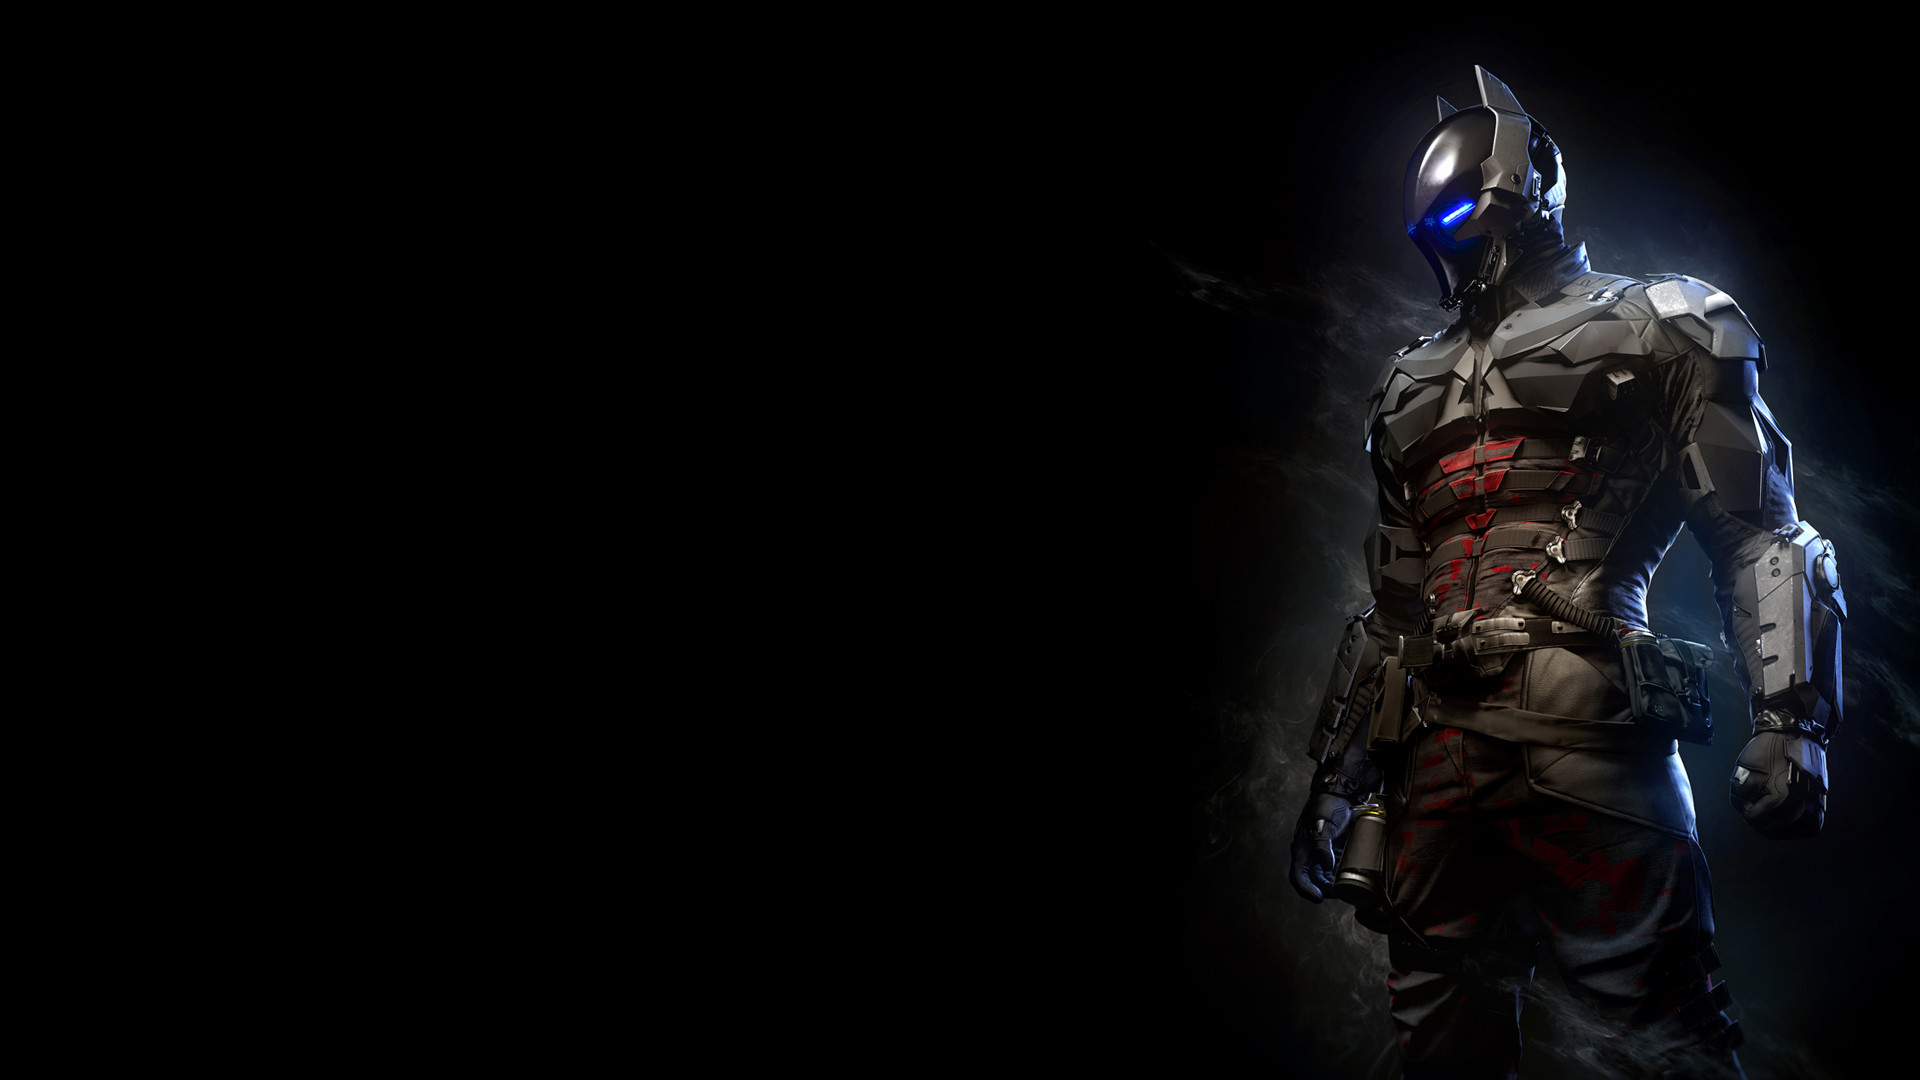 batman arkham knight wallpaper hd 46777